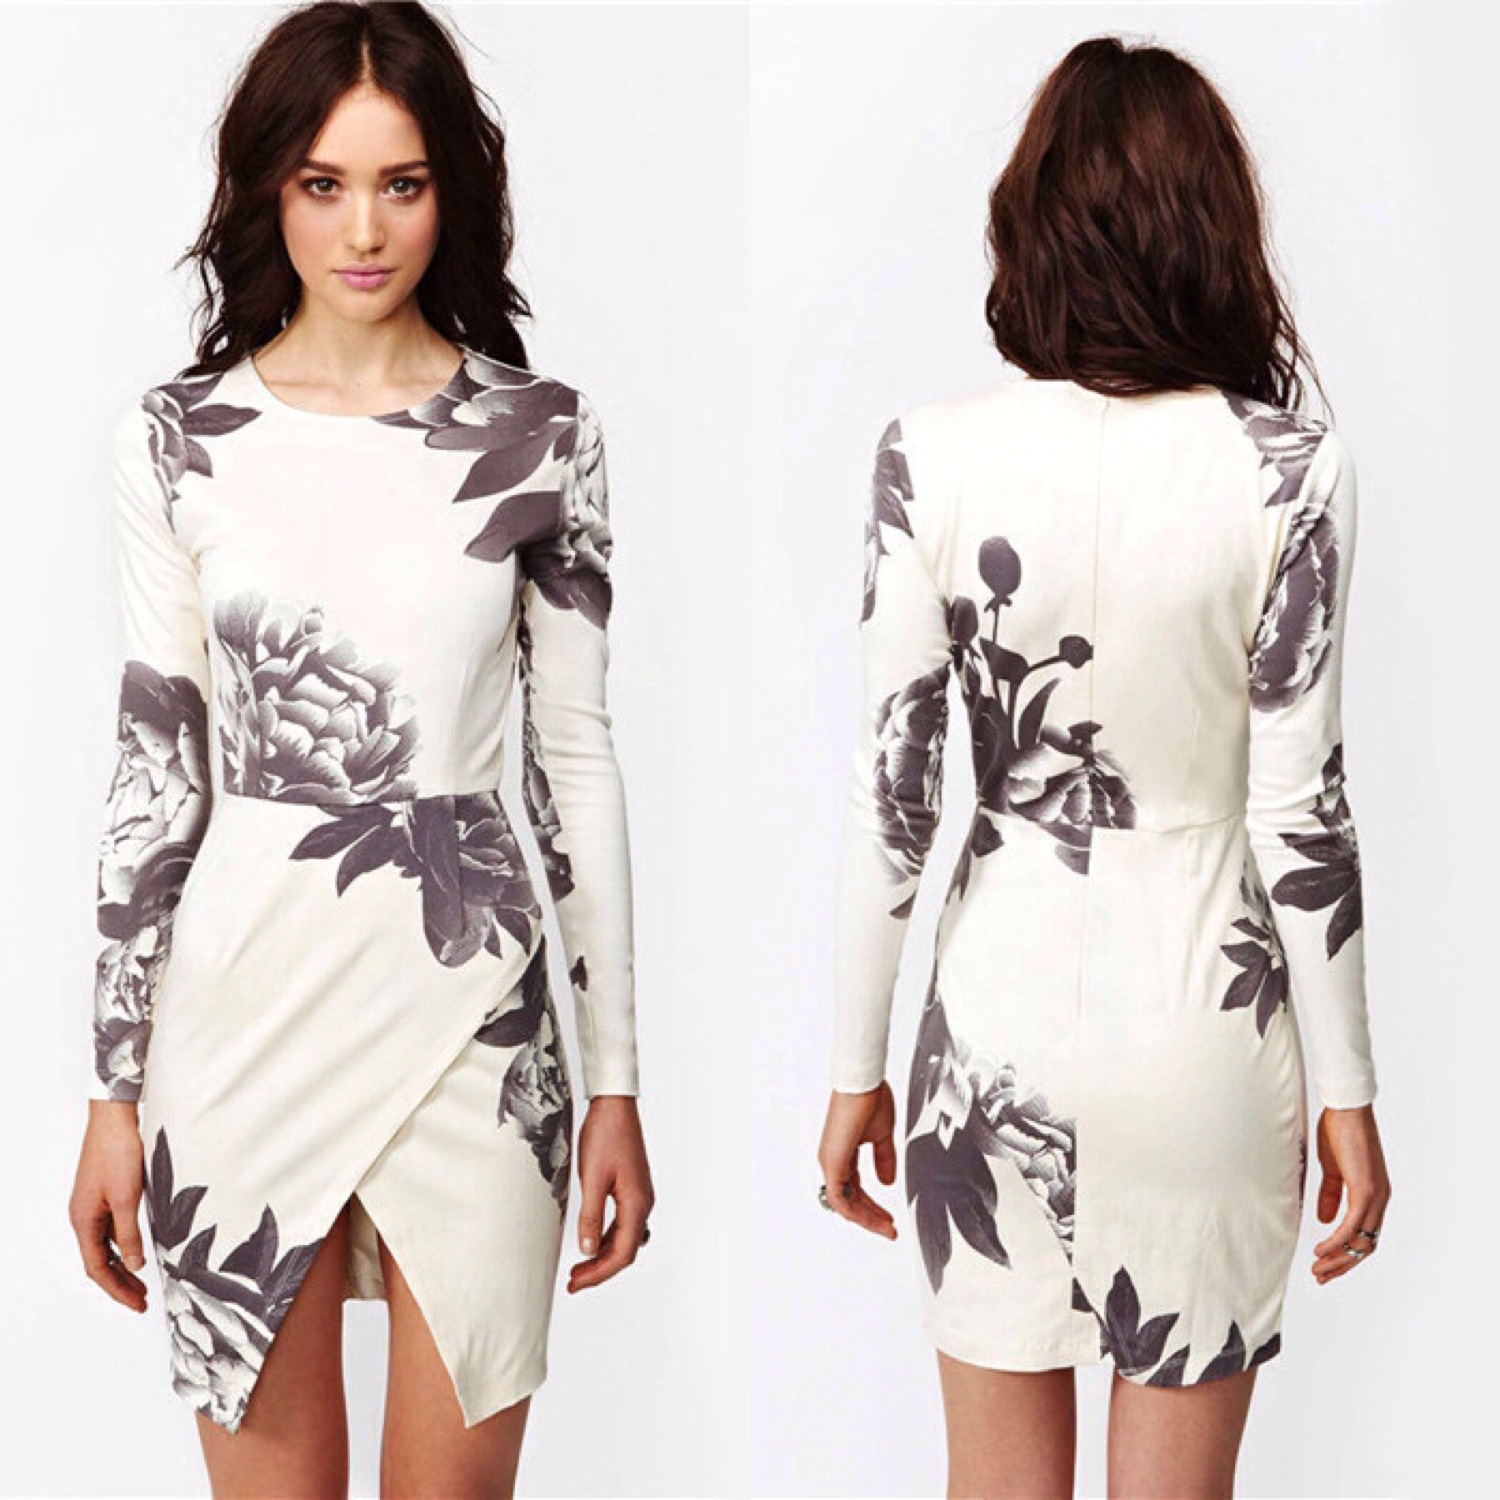 White Asymmetrical Wrap Dress with Floral Print $28 – Cool Wholesale